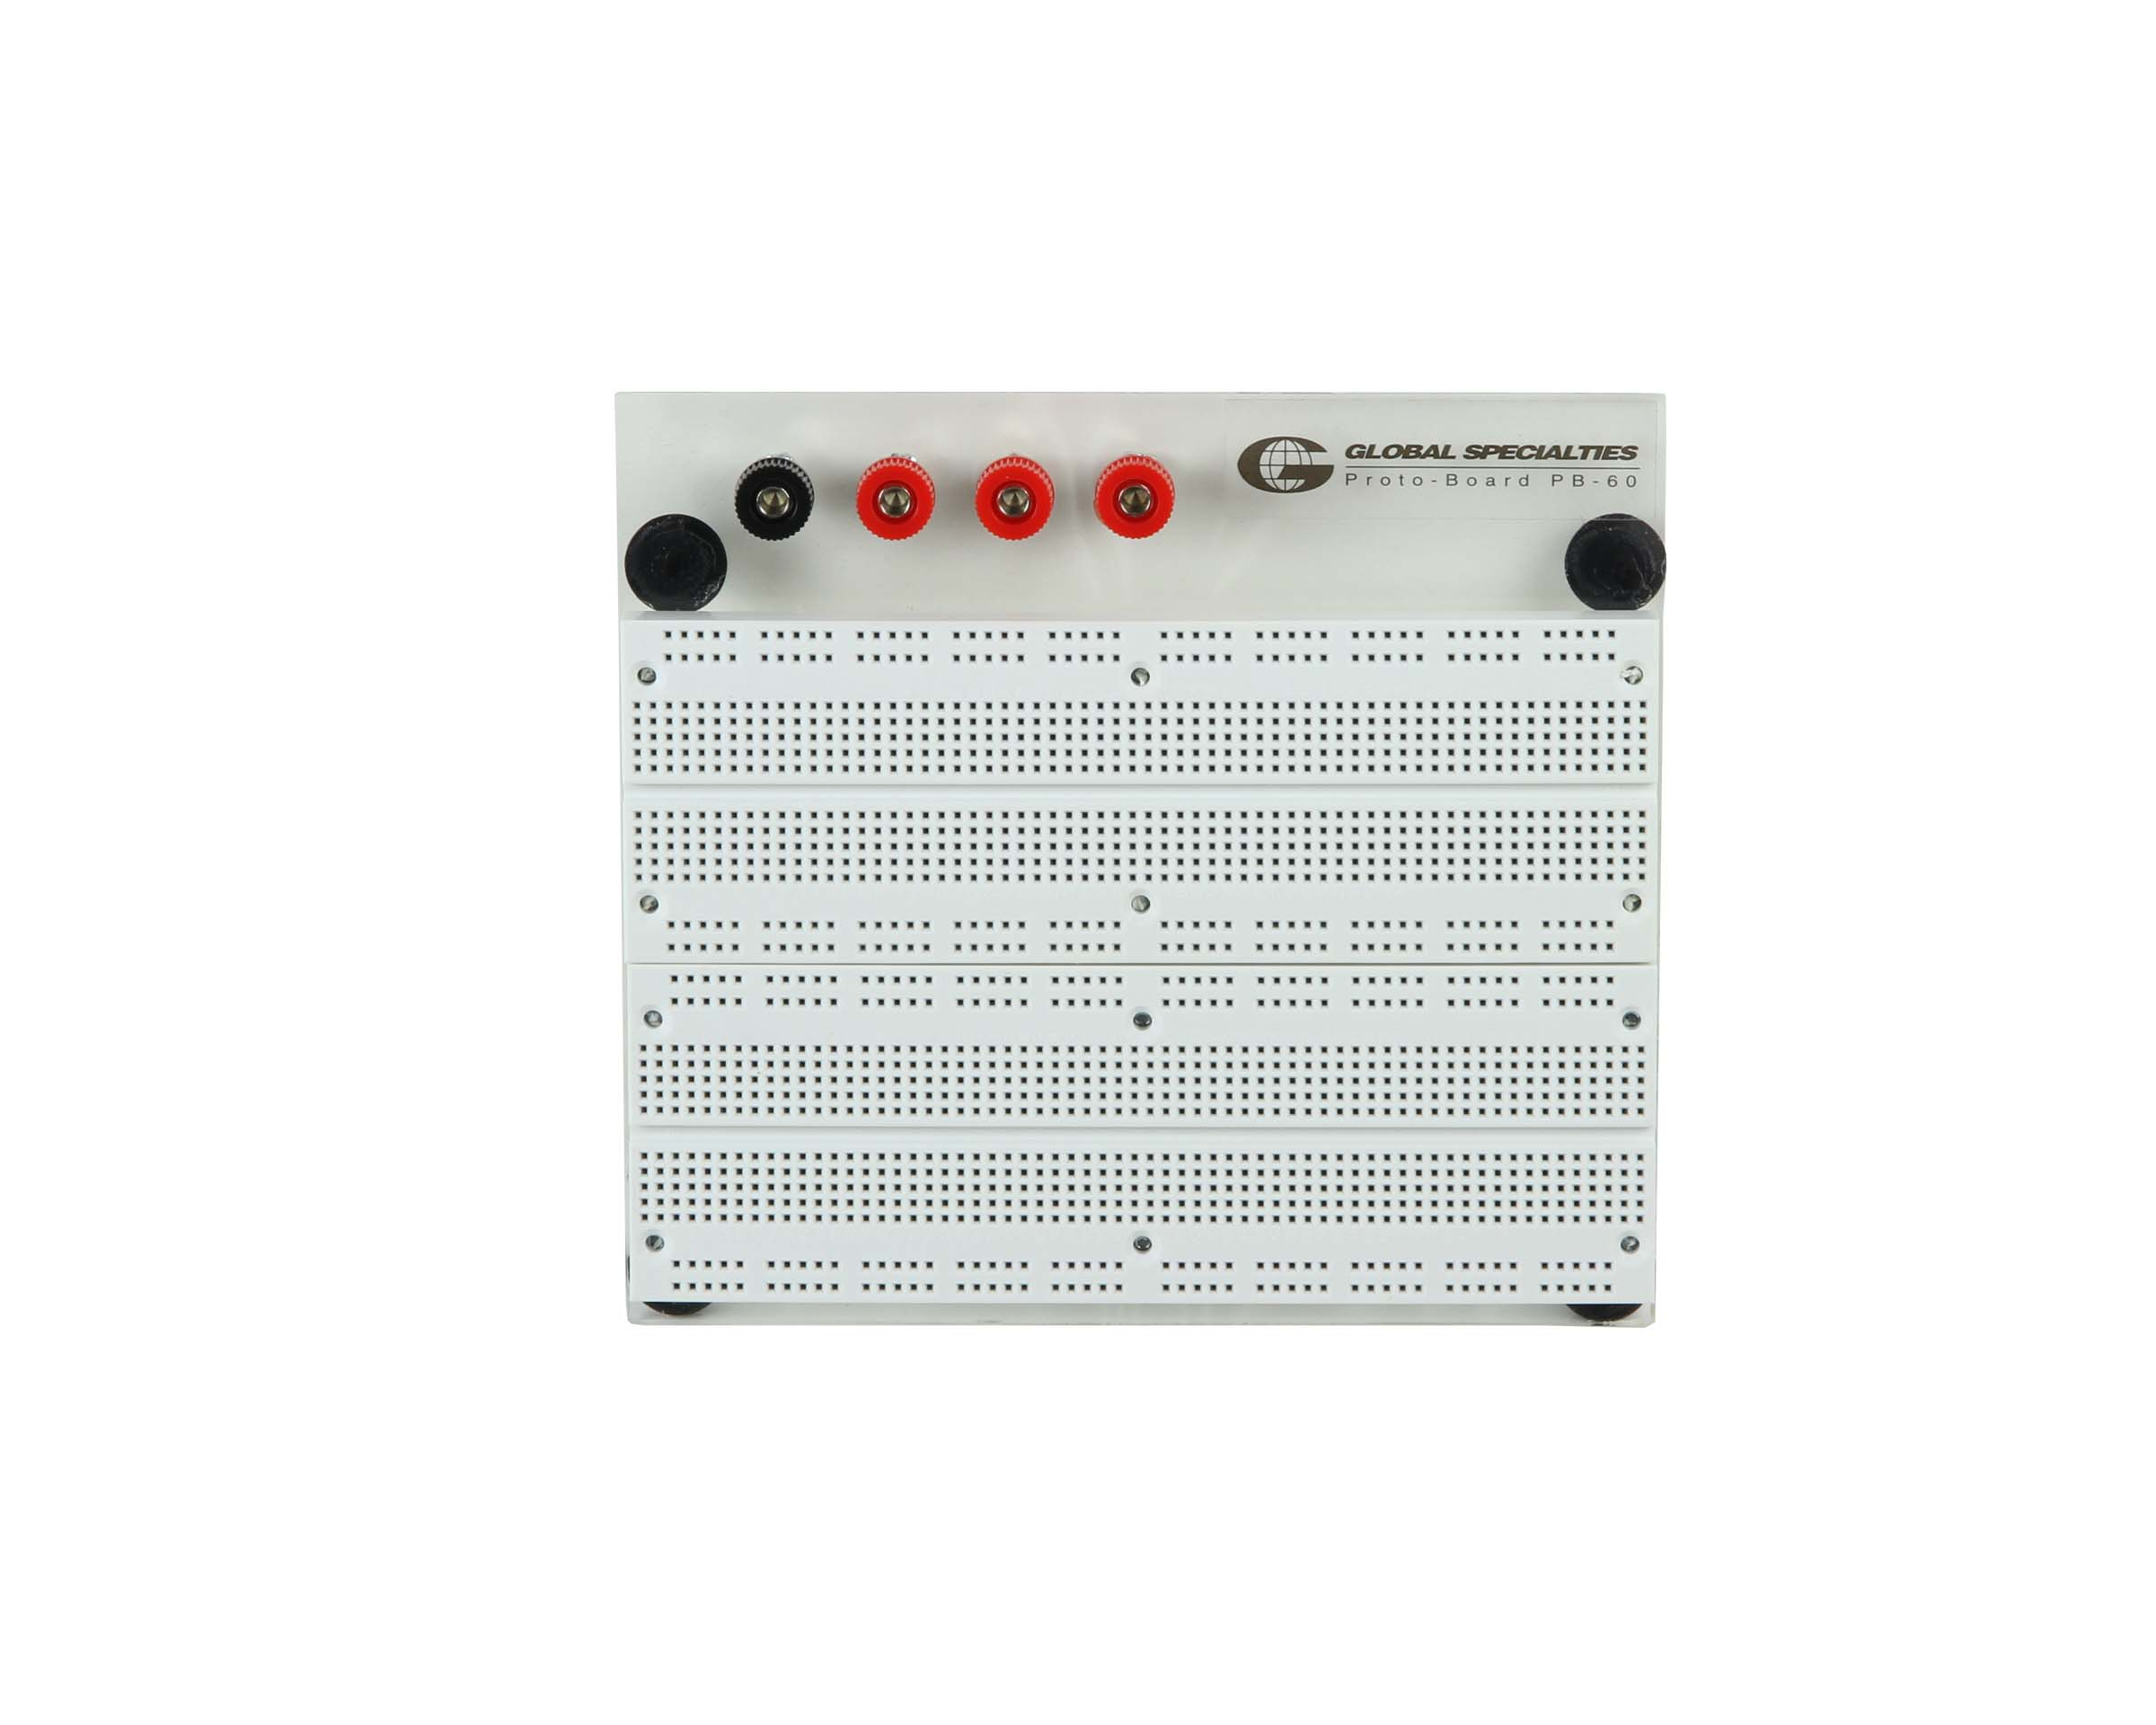 Global Specialties PB-60 Externally Powered 1680 Tie-Point Breadboard